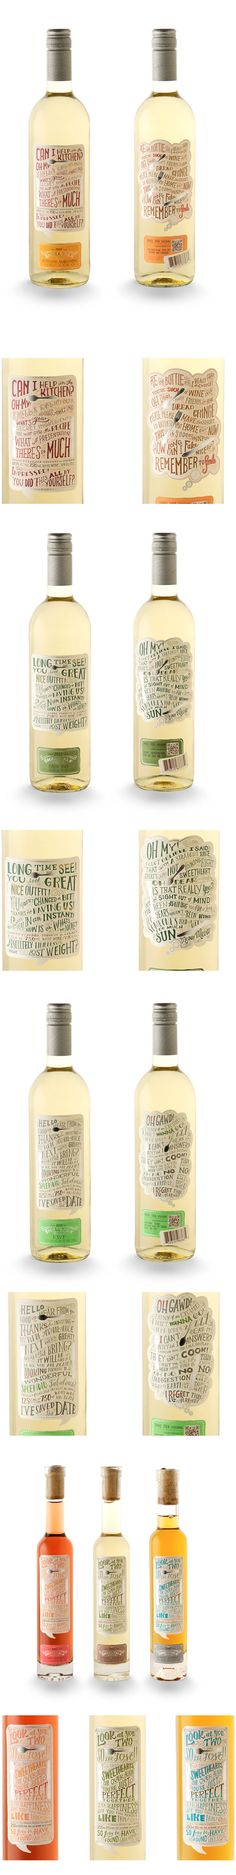 Small Talk Vineyard awesome conversational #wine #packaging PD